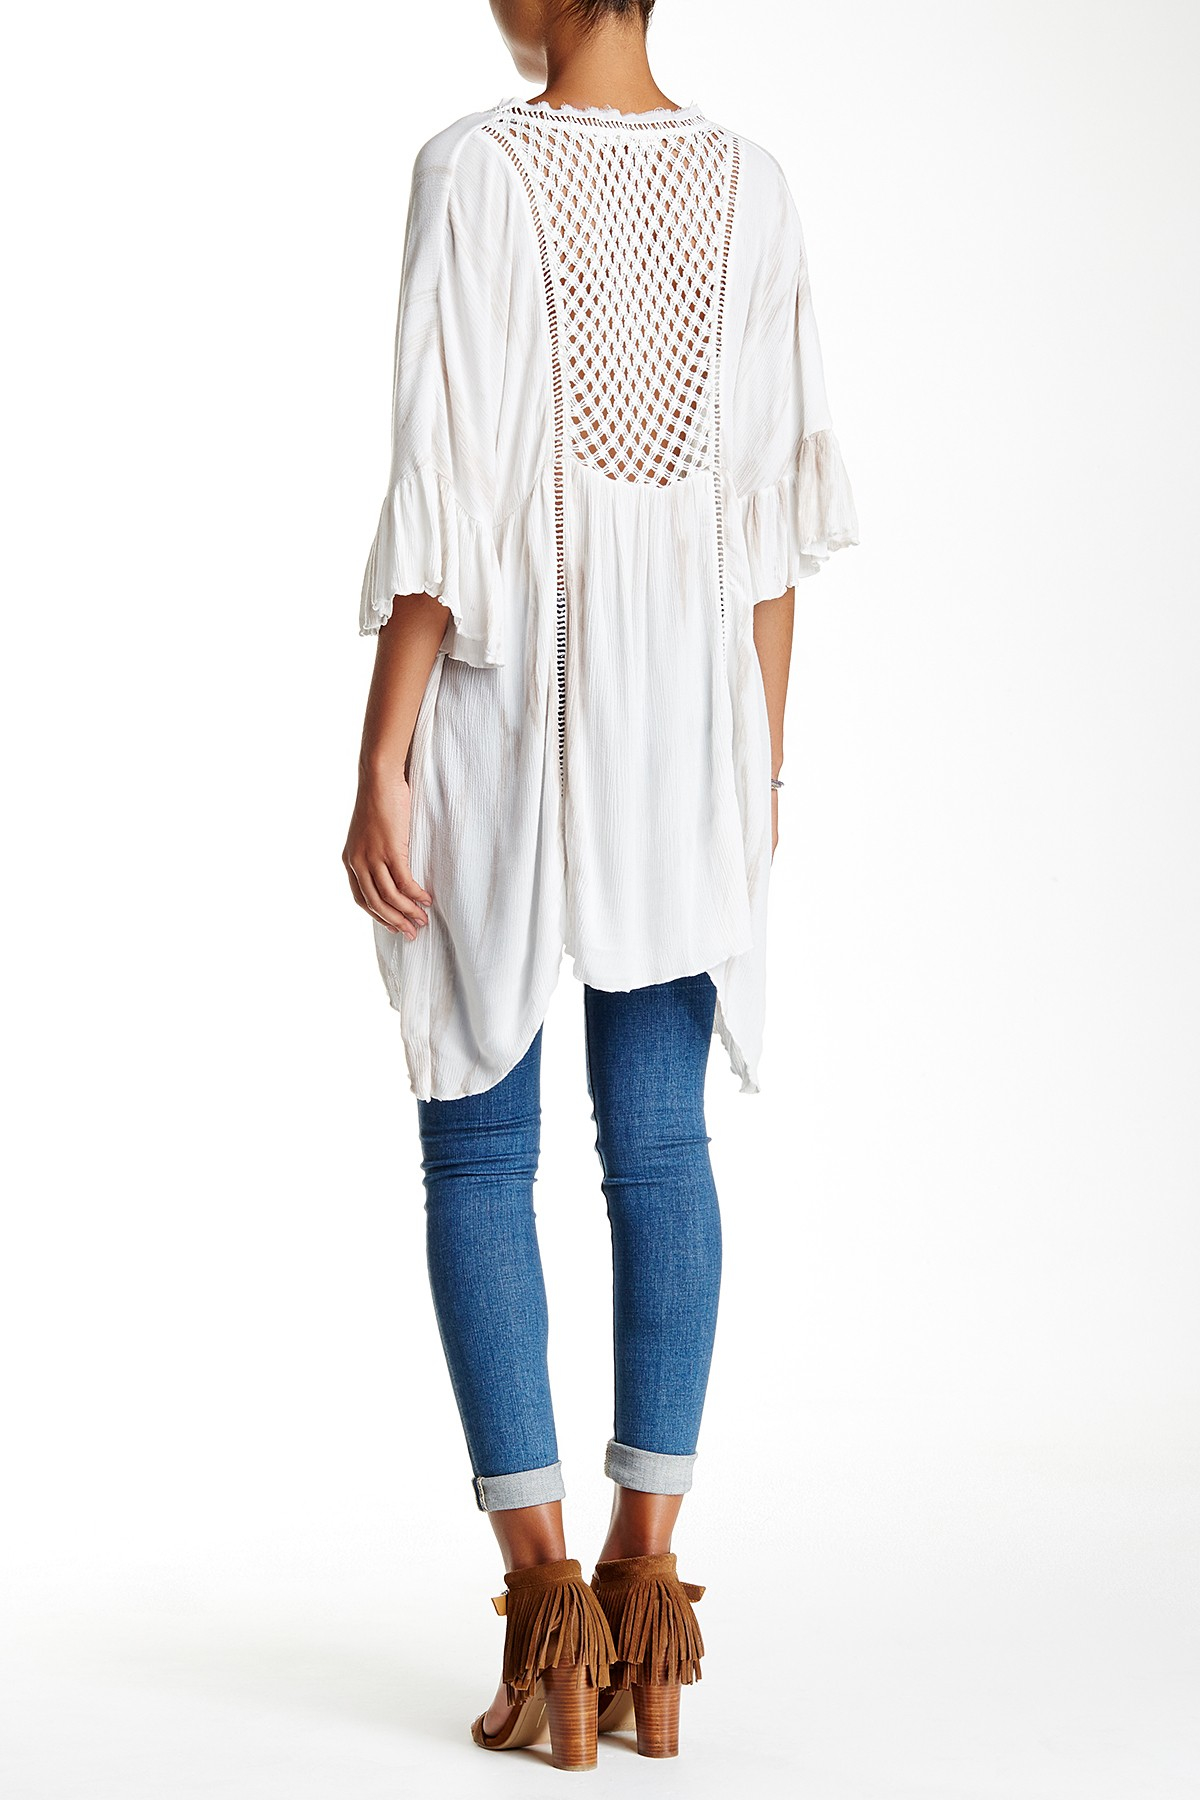 Ross Stores Womens Blouses